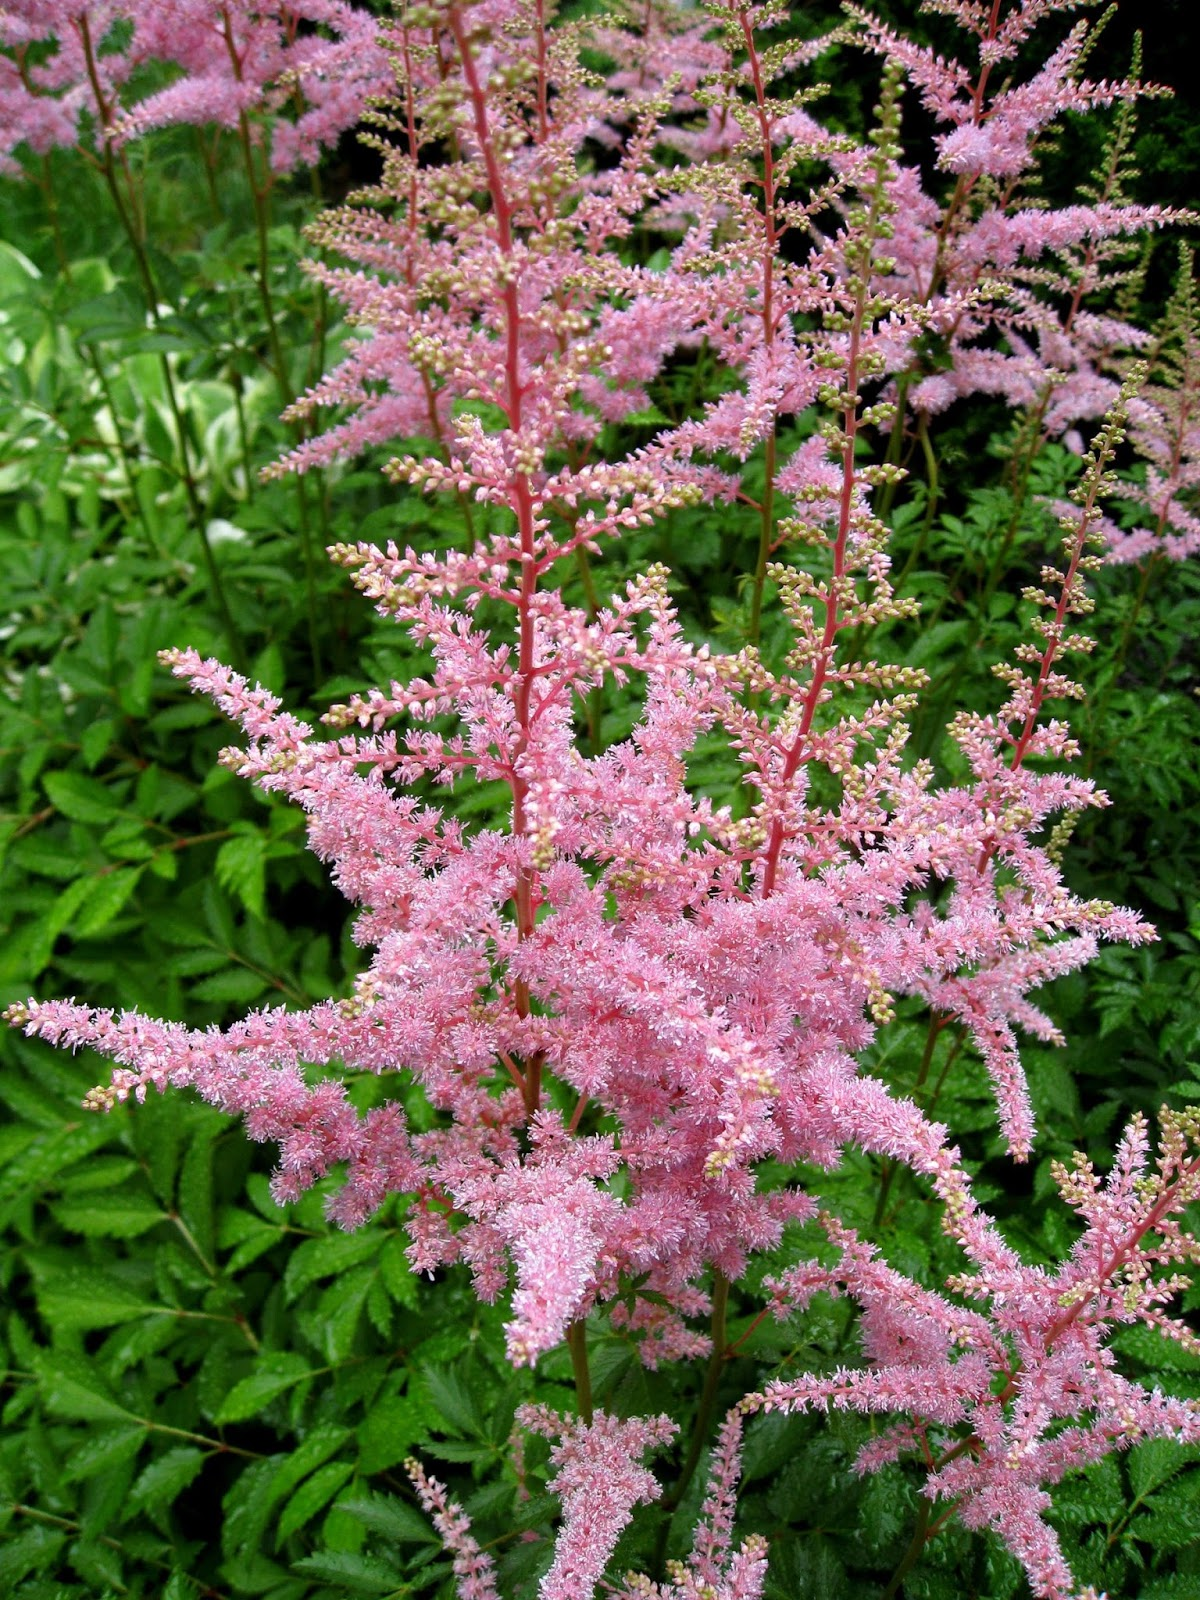 Image Astilbe_bunch_2.jpg free for use with attribution